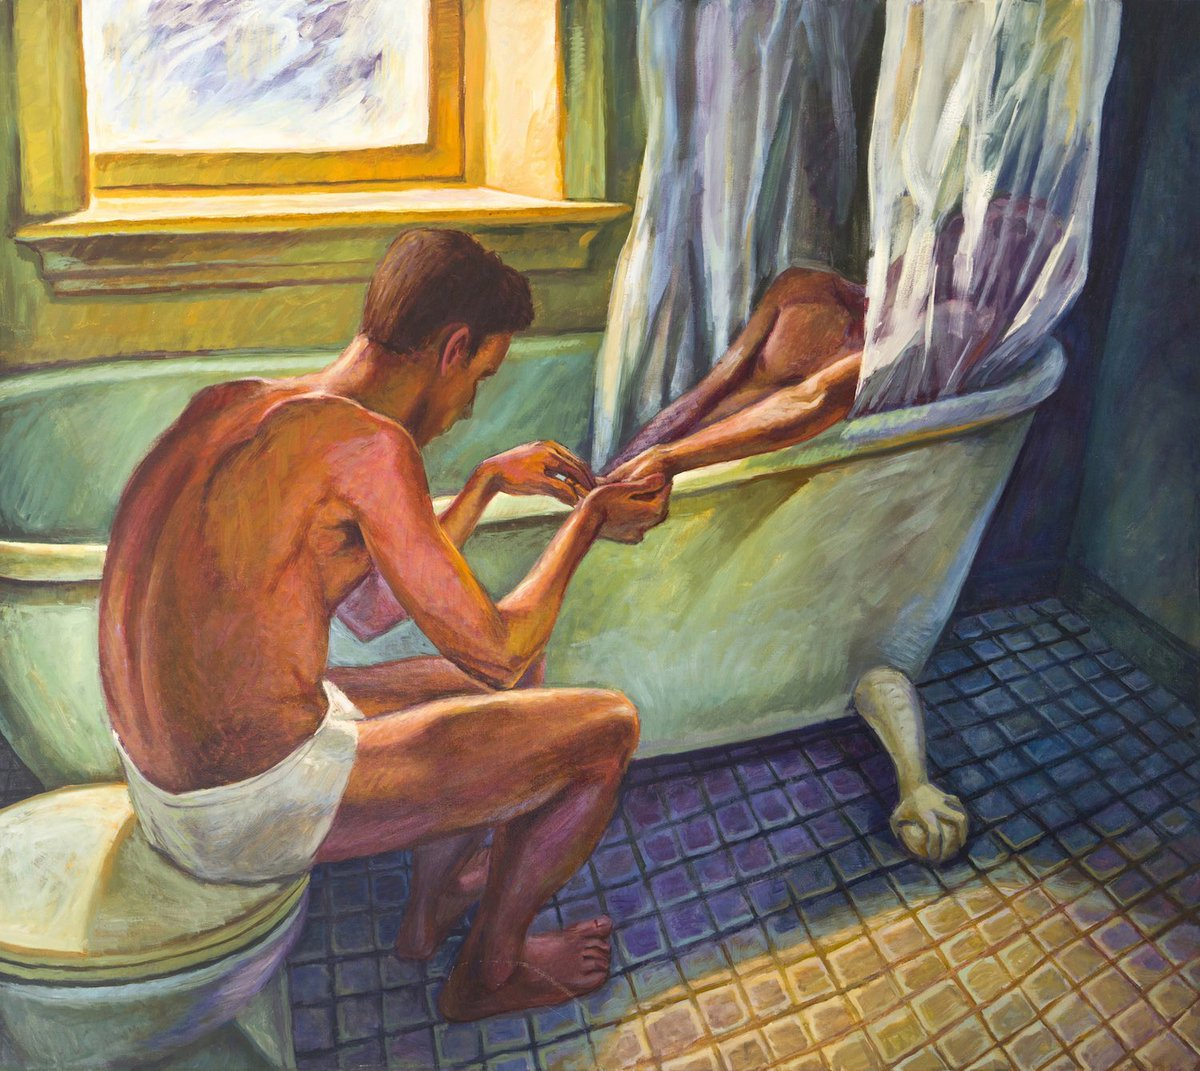 """Thinking abt hugh steers; how he painted 10 hours/day in his kitchen in nyc until his death at 32 in 1995, gorgeous paintings he called """"conjurings"""" showing acts of intimacy b/w lovers, how he never found true romance, how in his late paintings he wore high heels and could fly"""